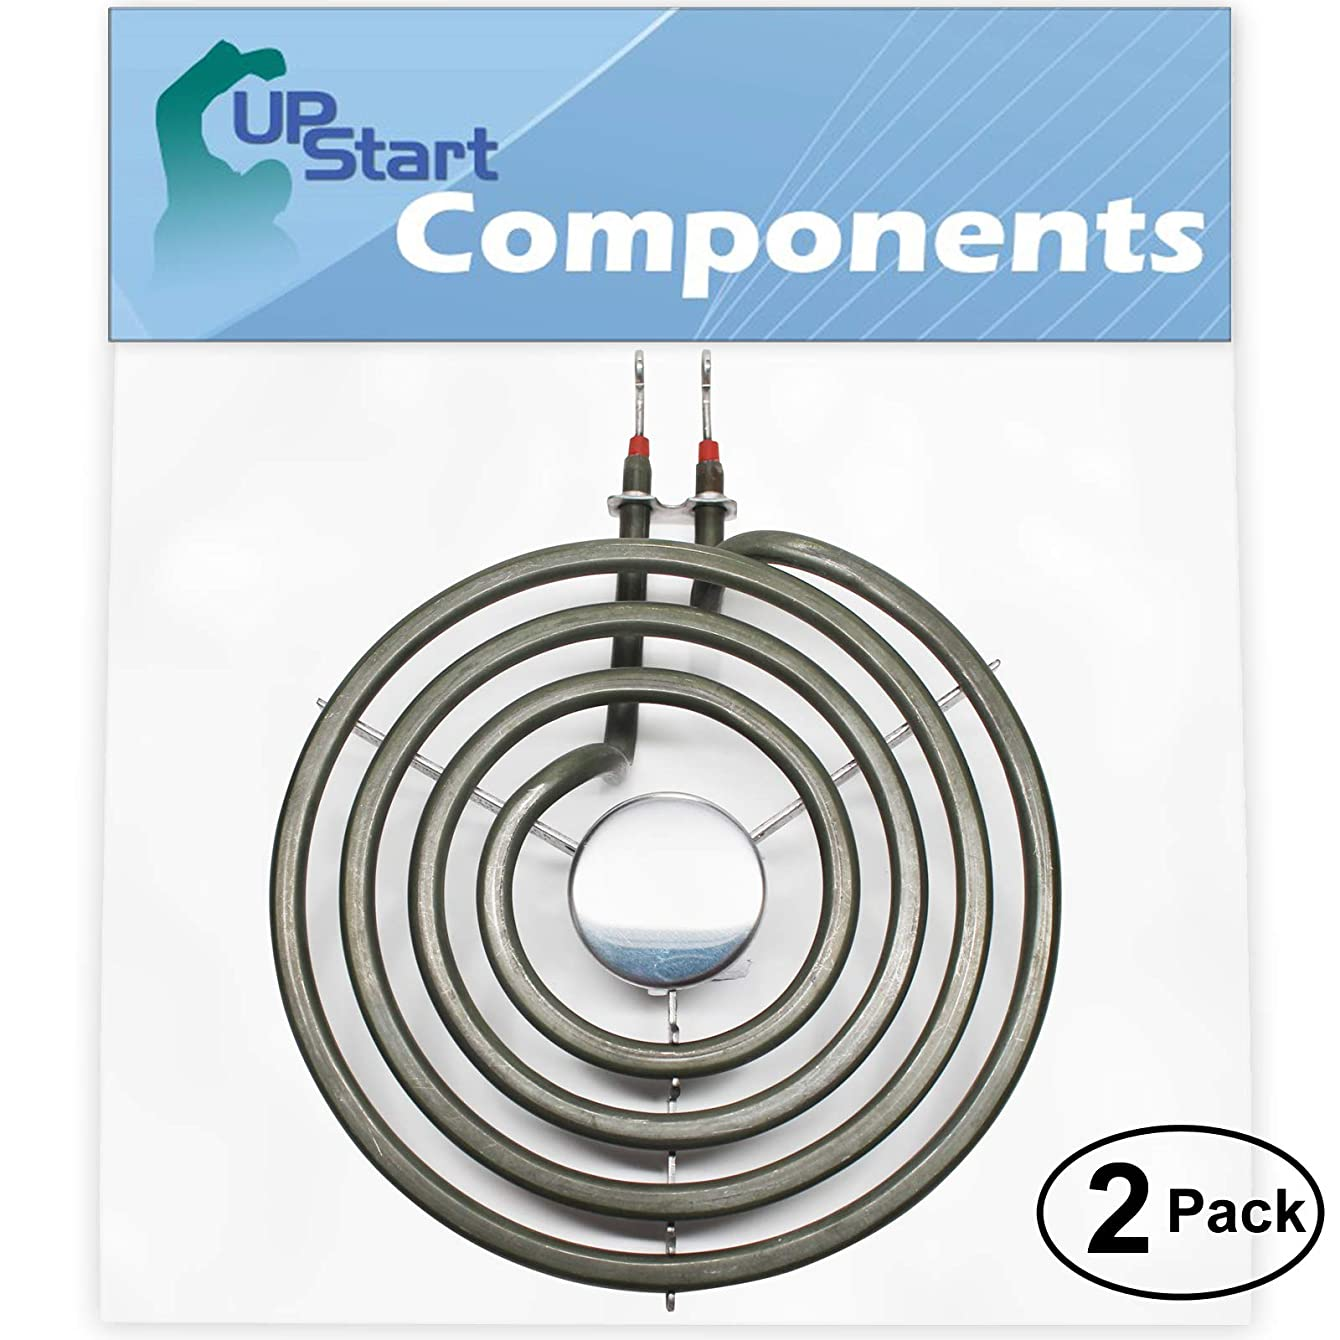 2-Pack Replacement Whirlpool RF306BXVW0 6 inch 4 Turns Surface Burner Element - Compatible Whirlpool 660532 Heating Element for Range, Stove & Cooktop